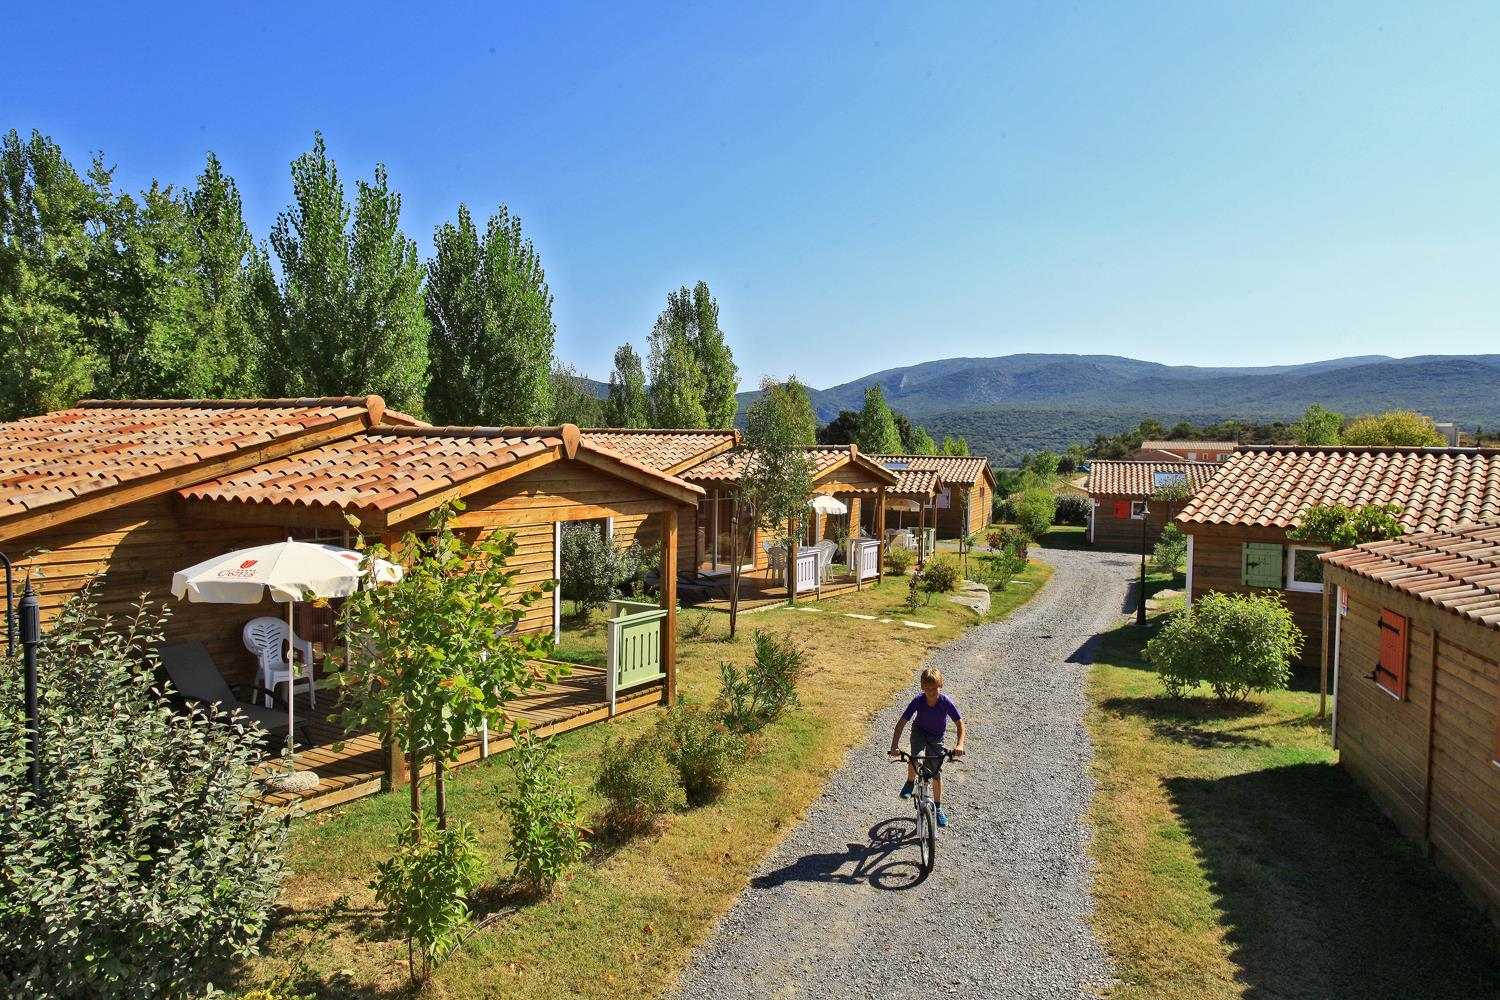 Accommodation - Chalet - 3 Bedrooms - 1 Bathroom - Chêne Vert Pmr (Adapted To The People With Reduced Mobility) - Les Castels Domaine de Sévenier